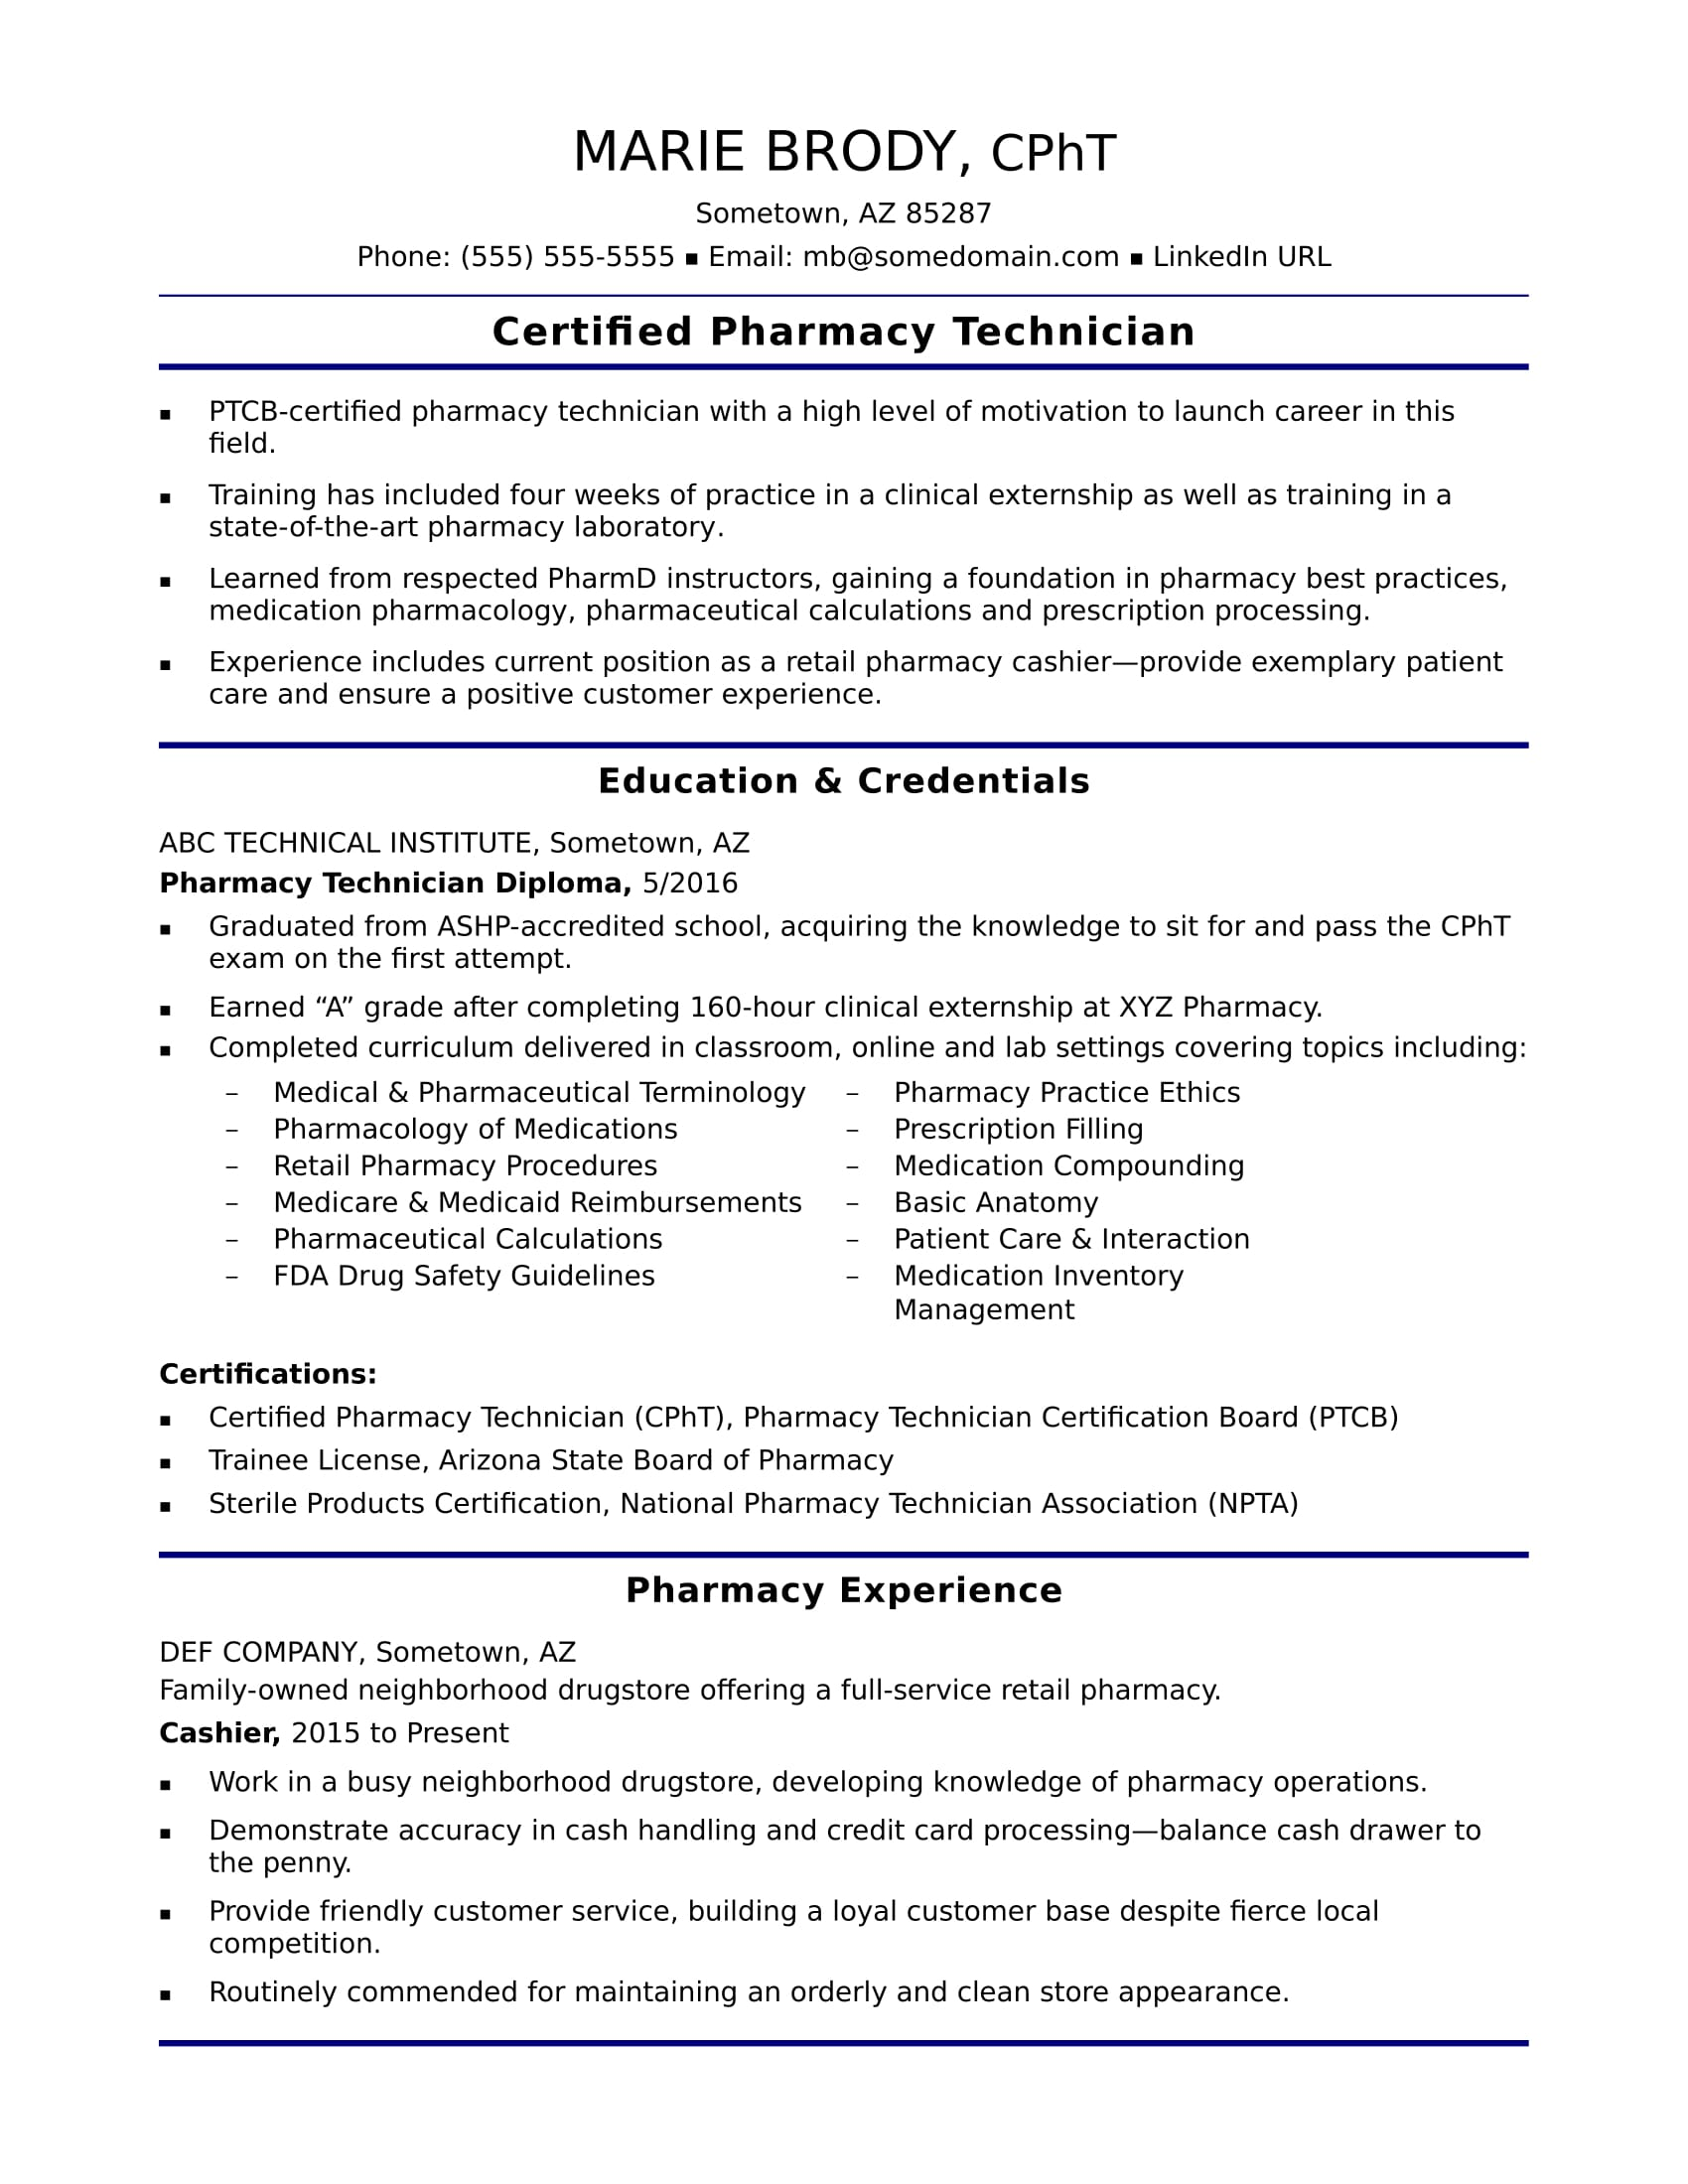 Entry-Level Pharmacy Technician Resume Sample | Monster.com